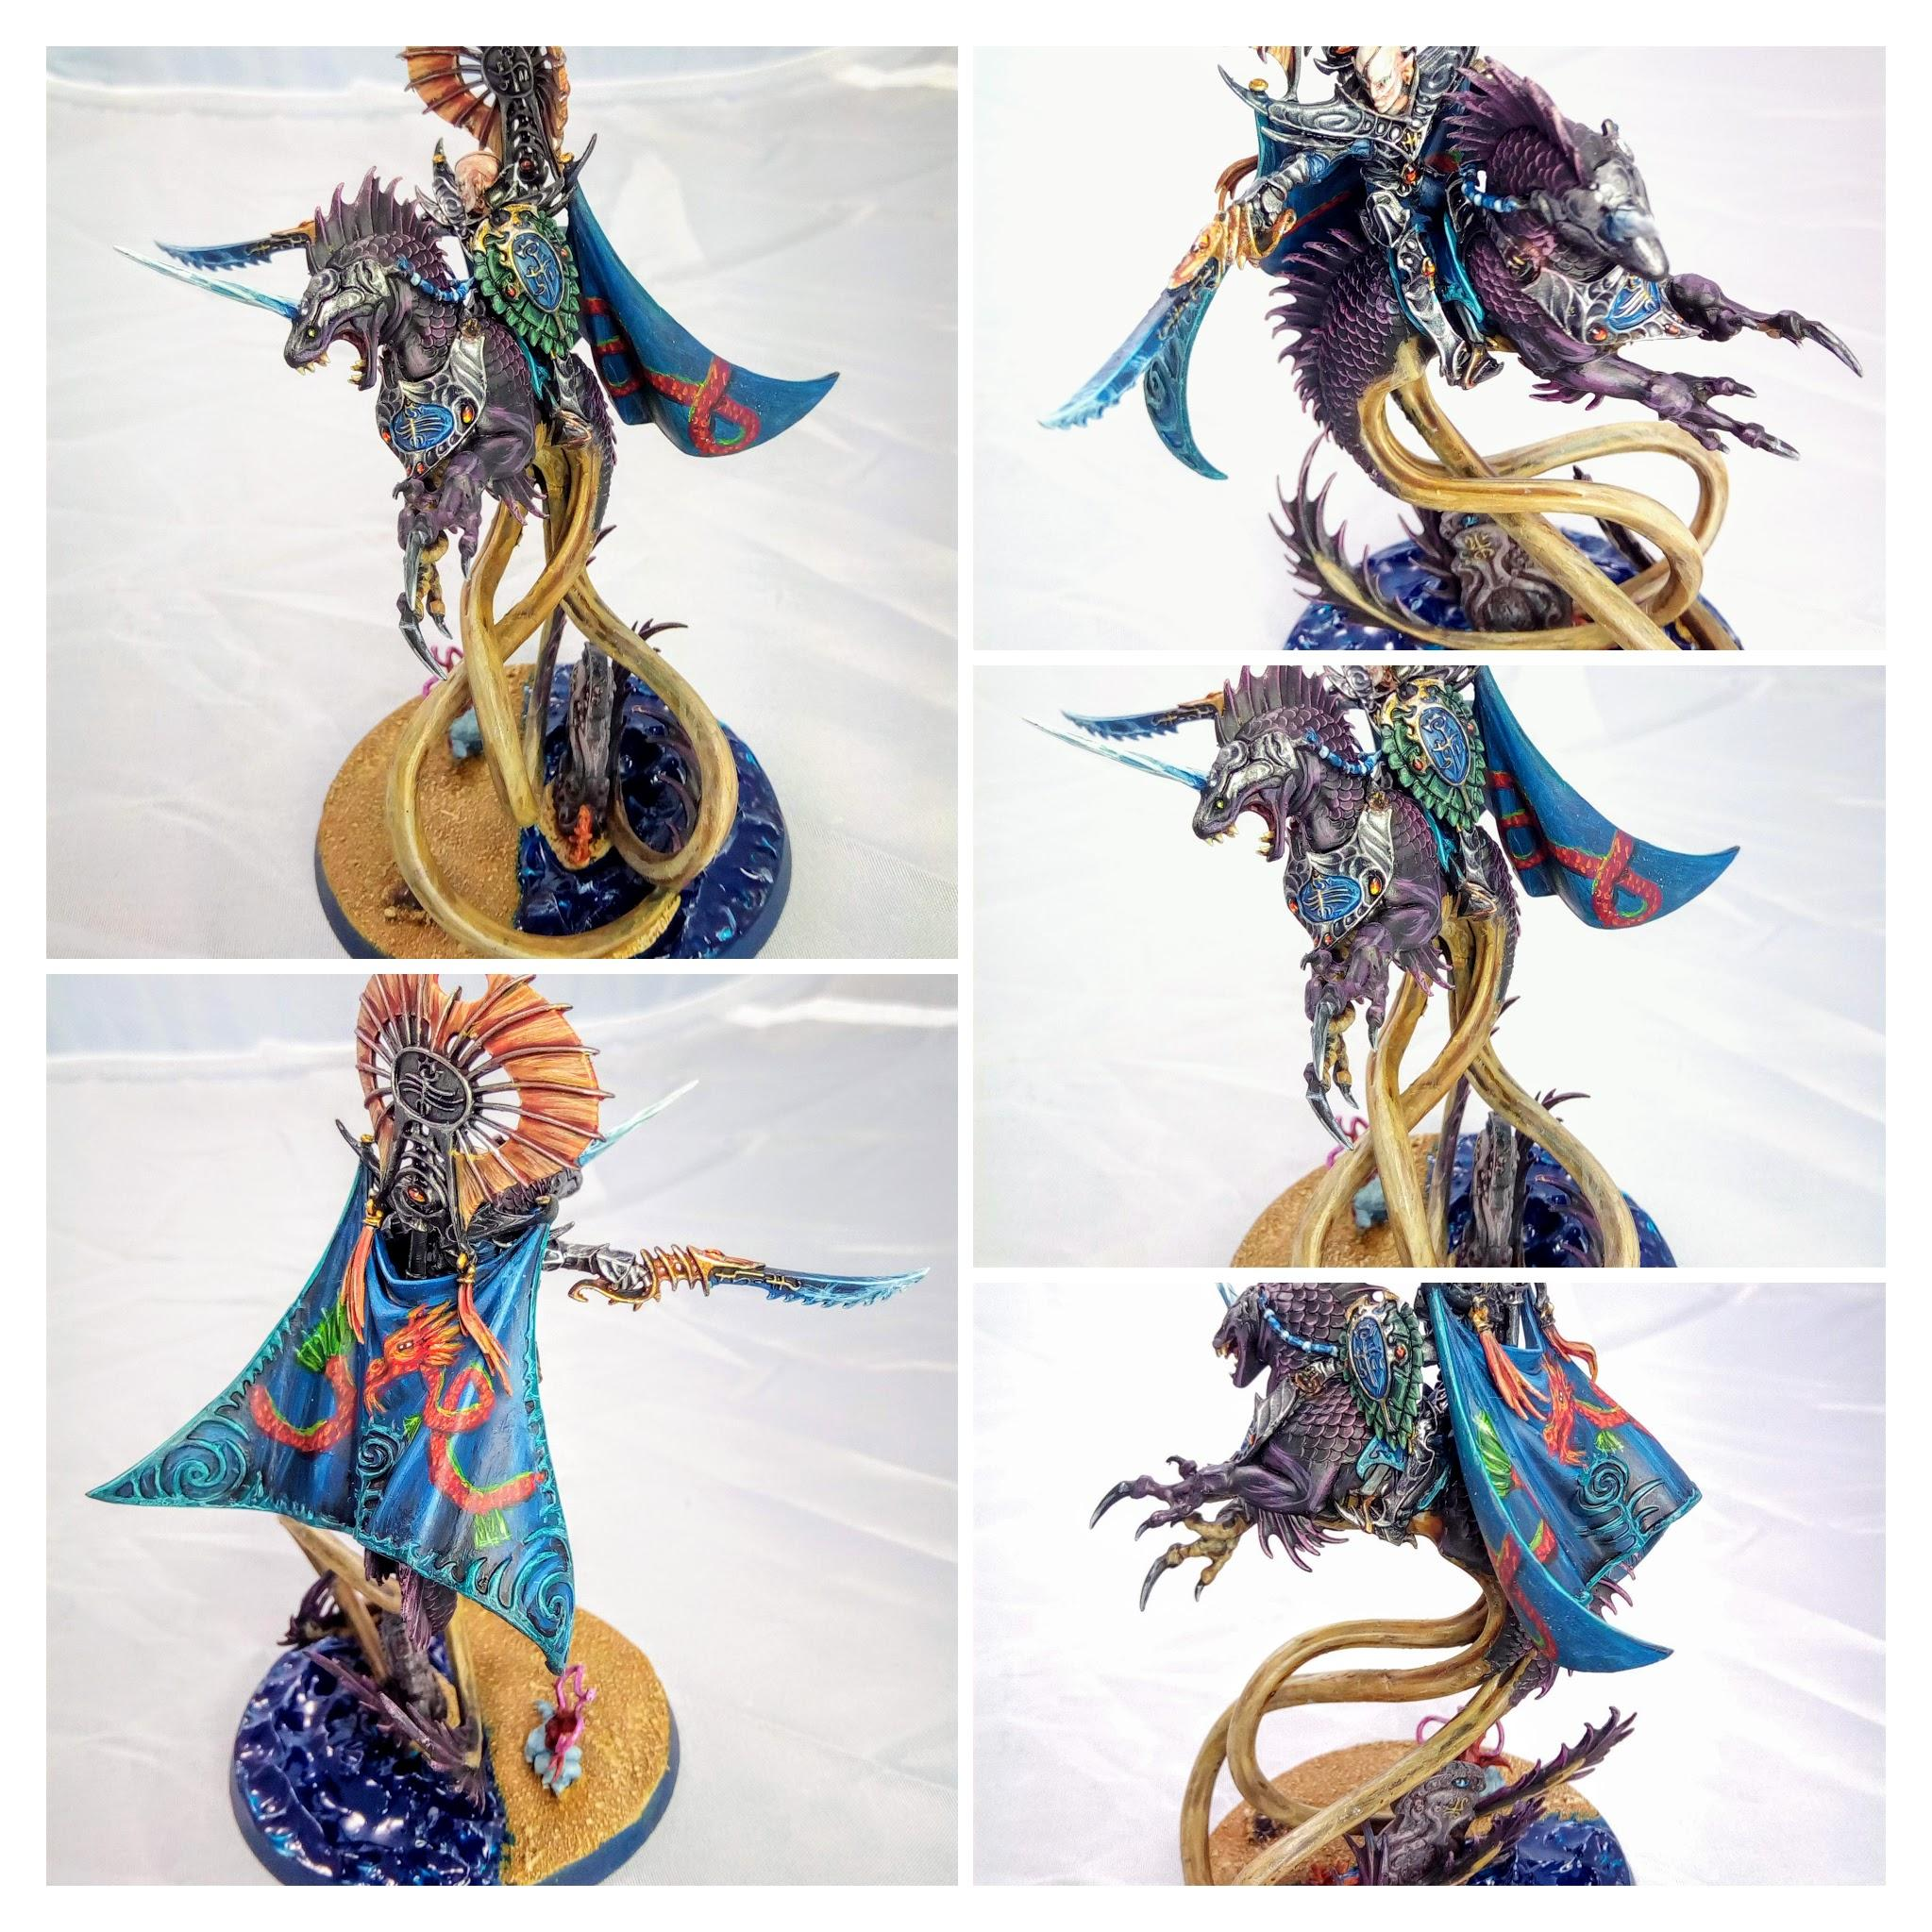 Aelf, Age Of Sigmar, Beach, Character, Dragon, Elves, Freehand, Idoneth Deepkin, Ionrach, Mounted, Sea Base, Volturnos